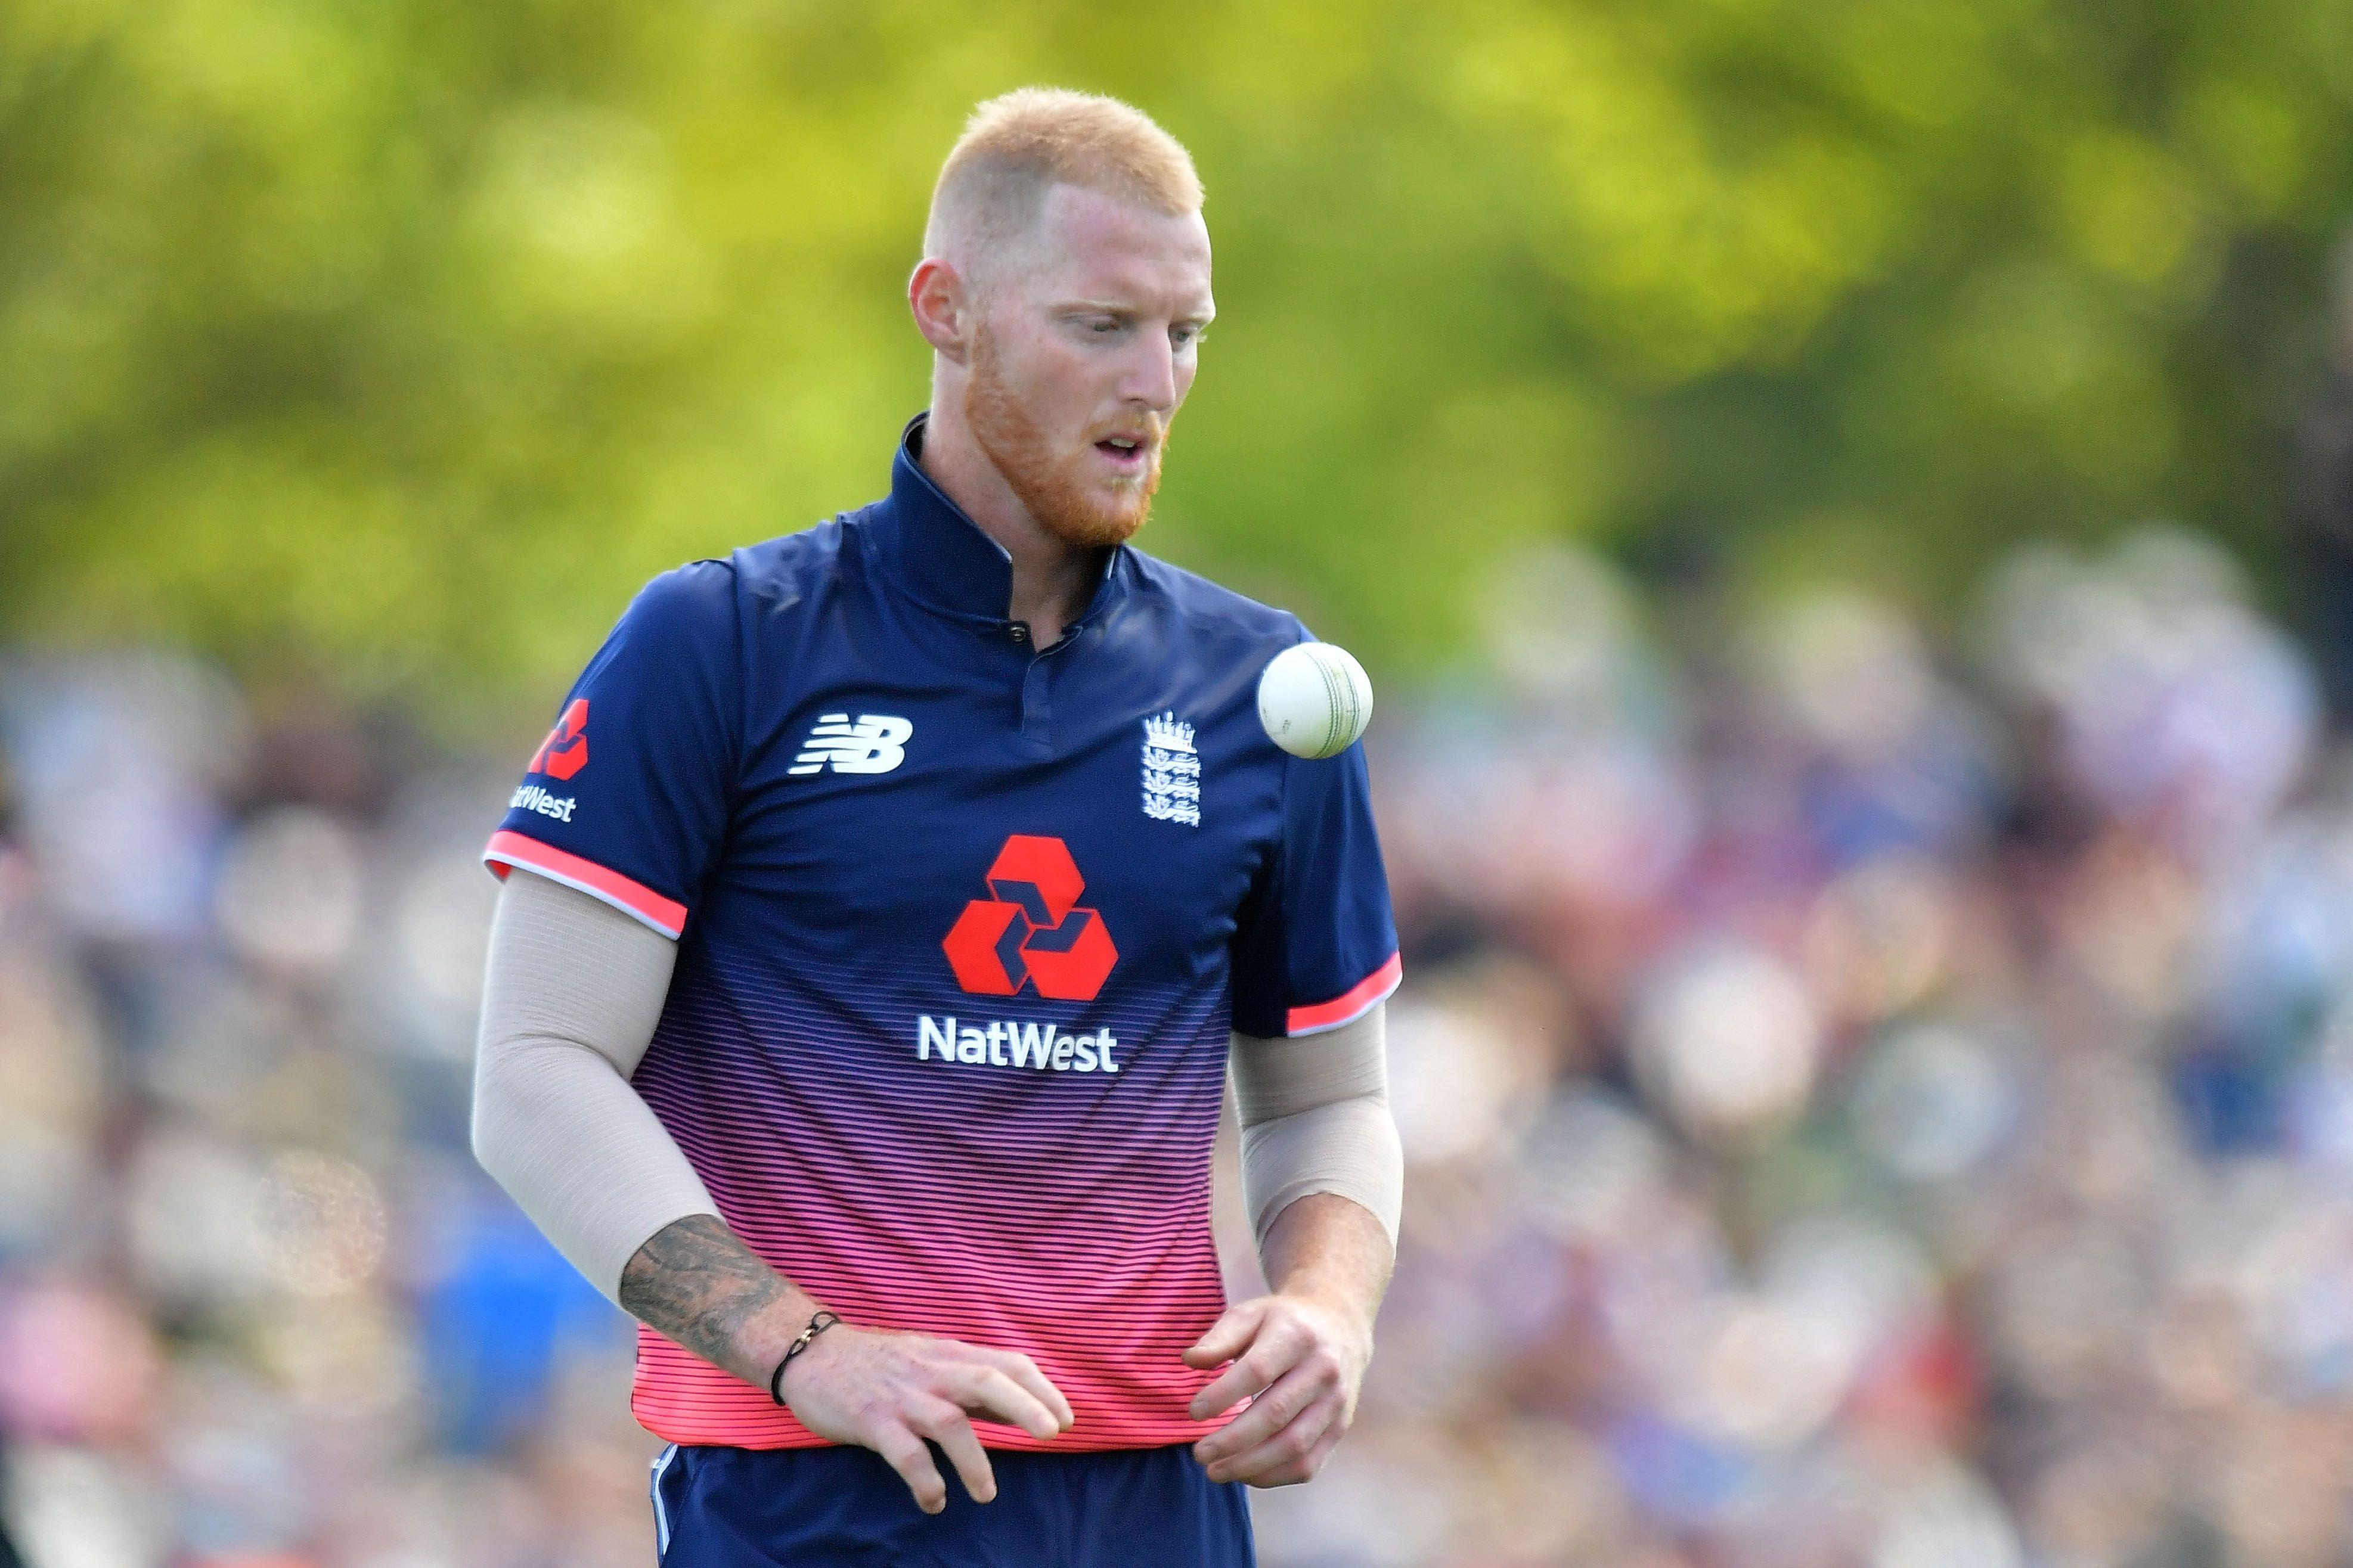 Ben Stokes is back playing for England at Lord's